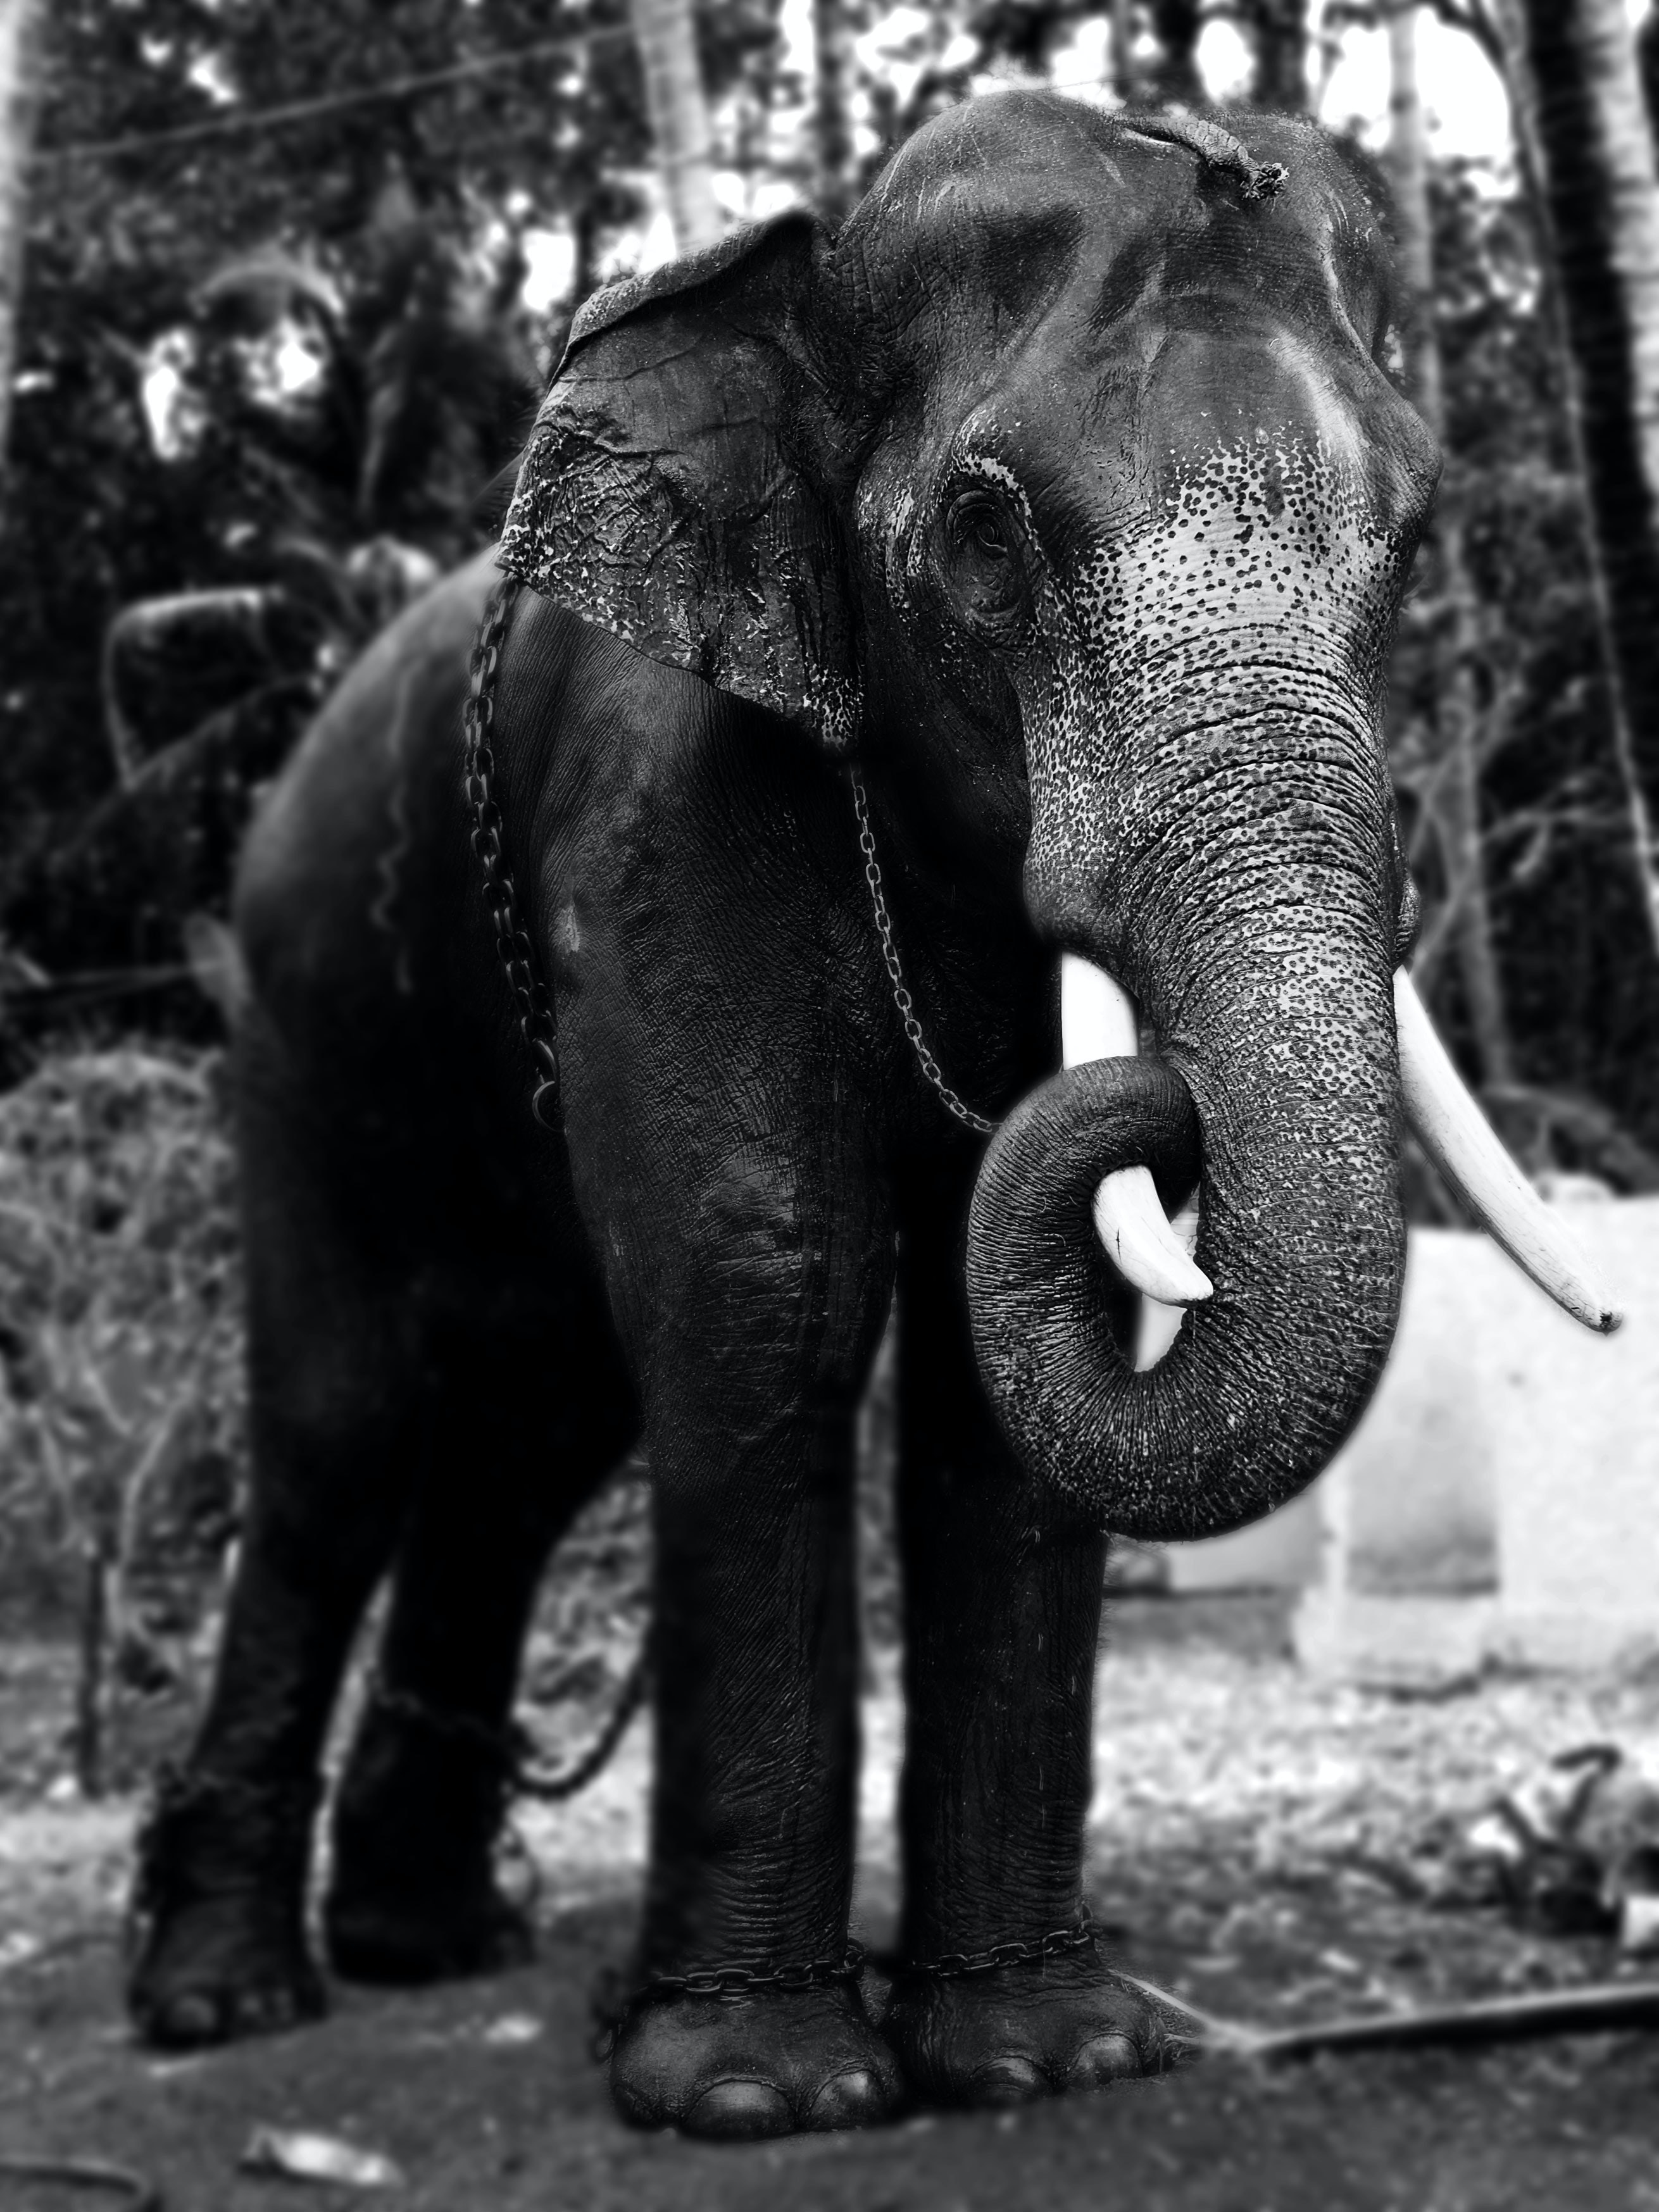 grayscale photography of an elephant